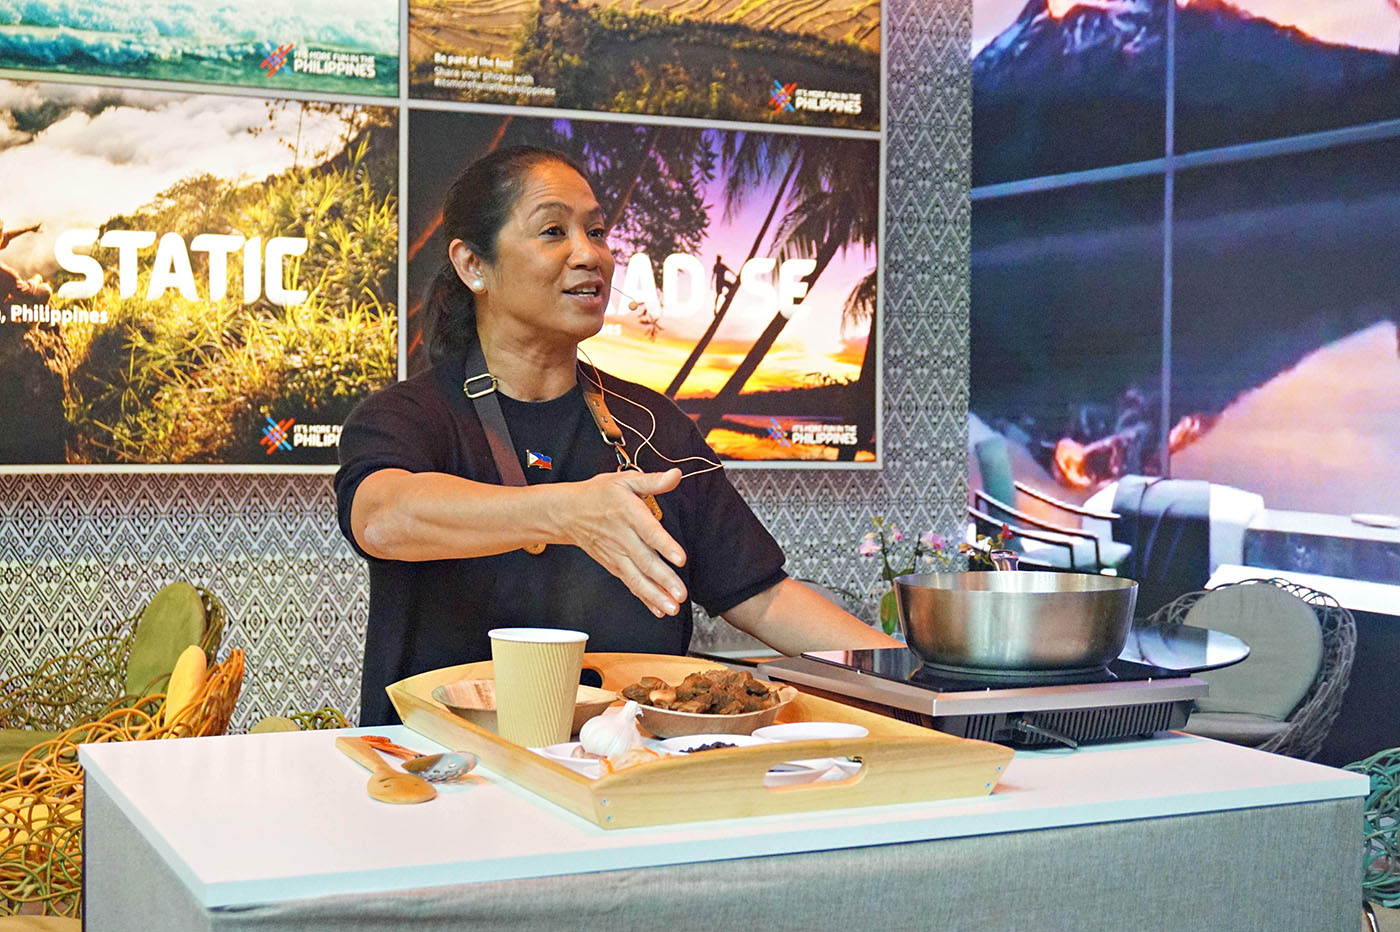 FILIPINO DISHES. Gaita Fores makes a demonstration of Filipino food during the trade fair in Berlin.